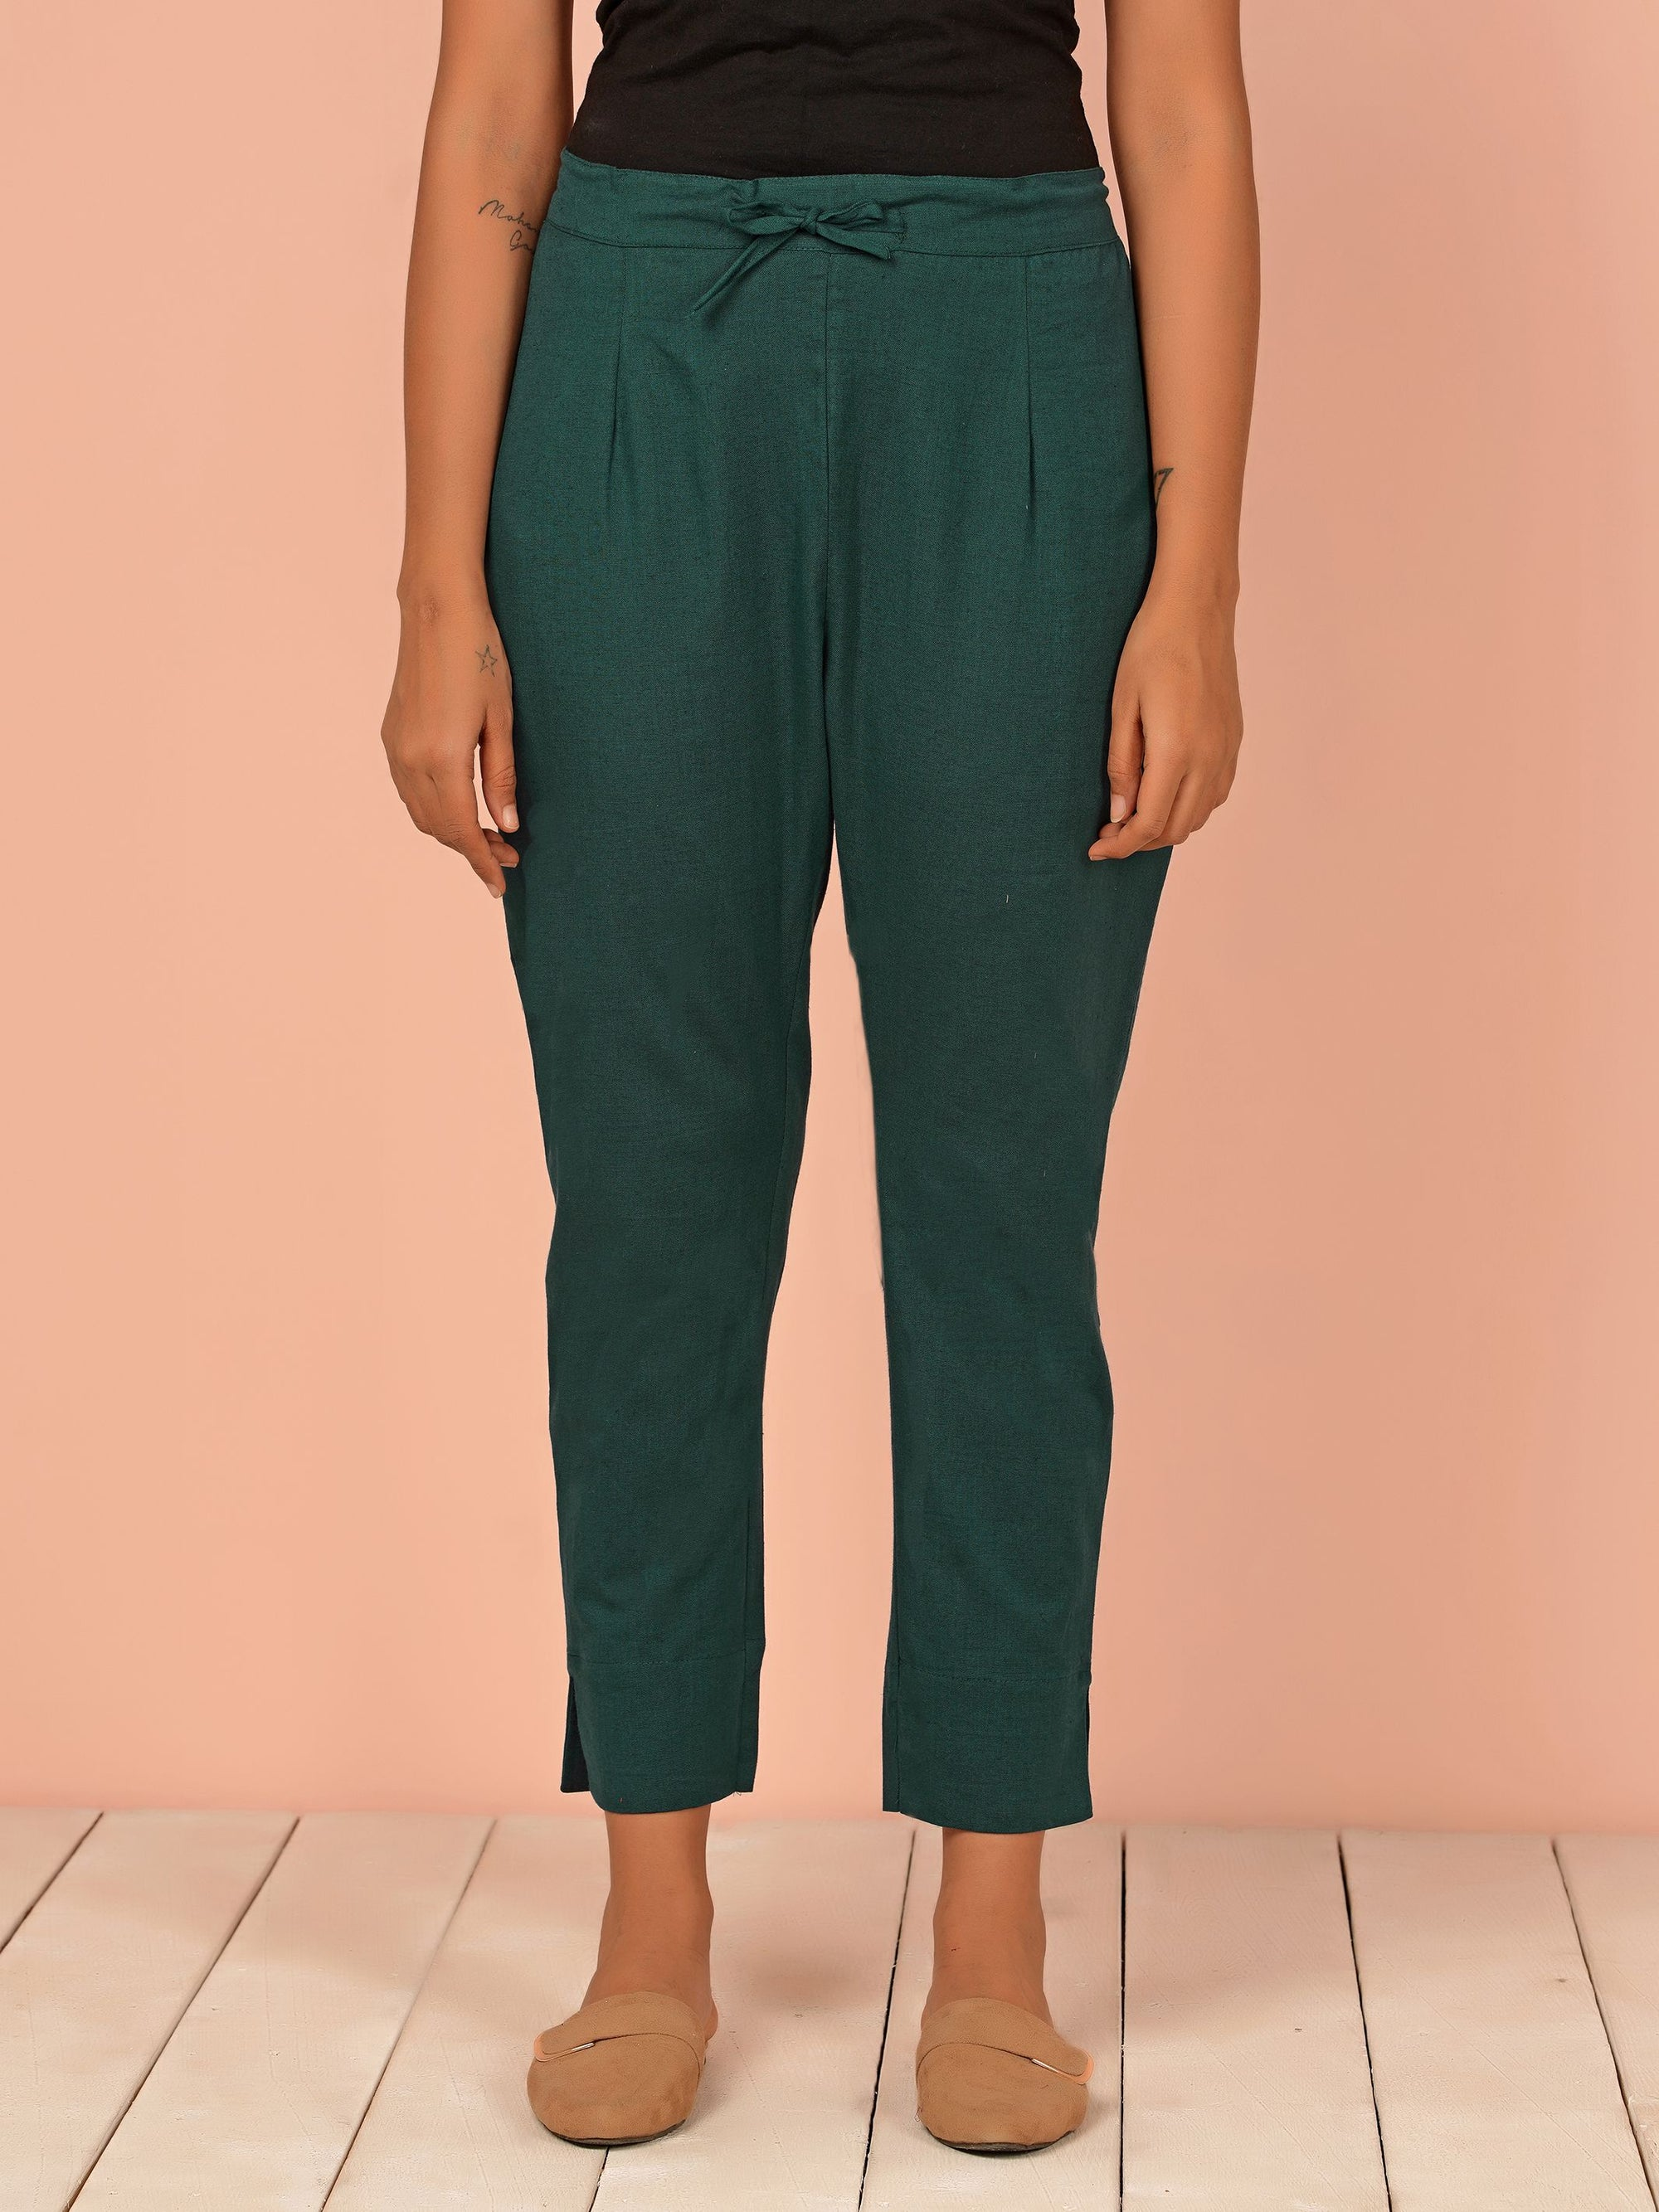 Floral Embroidered Schiffli Palazzo Pants - Green